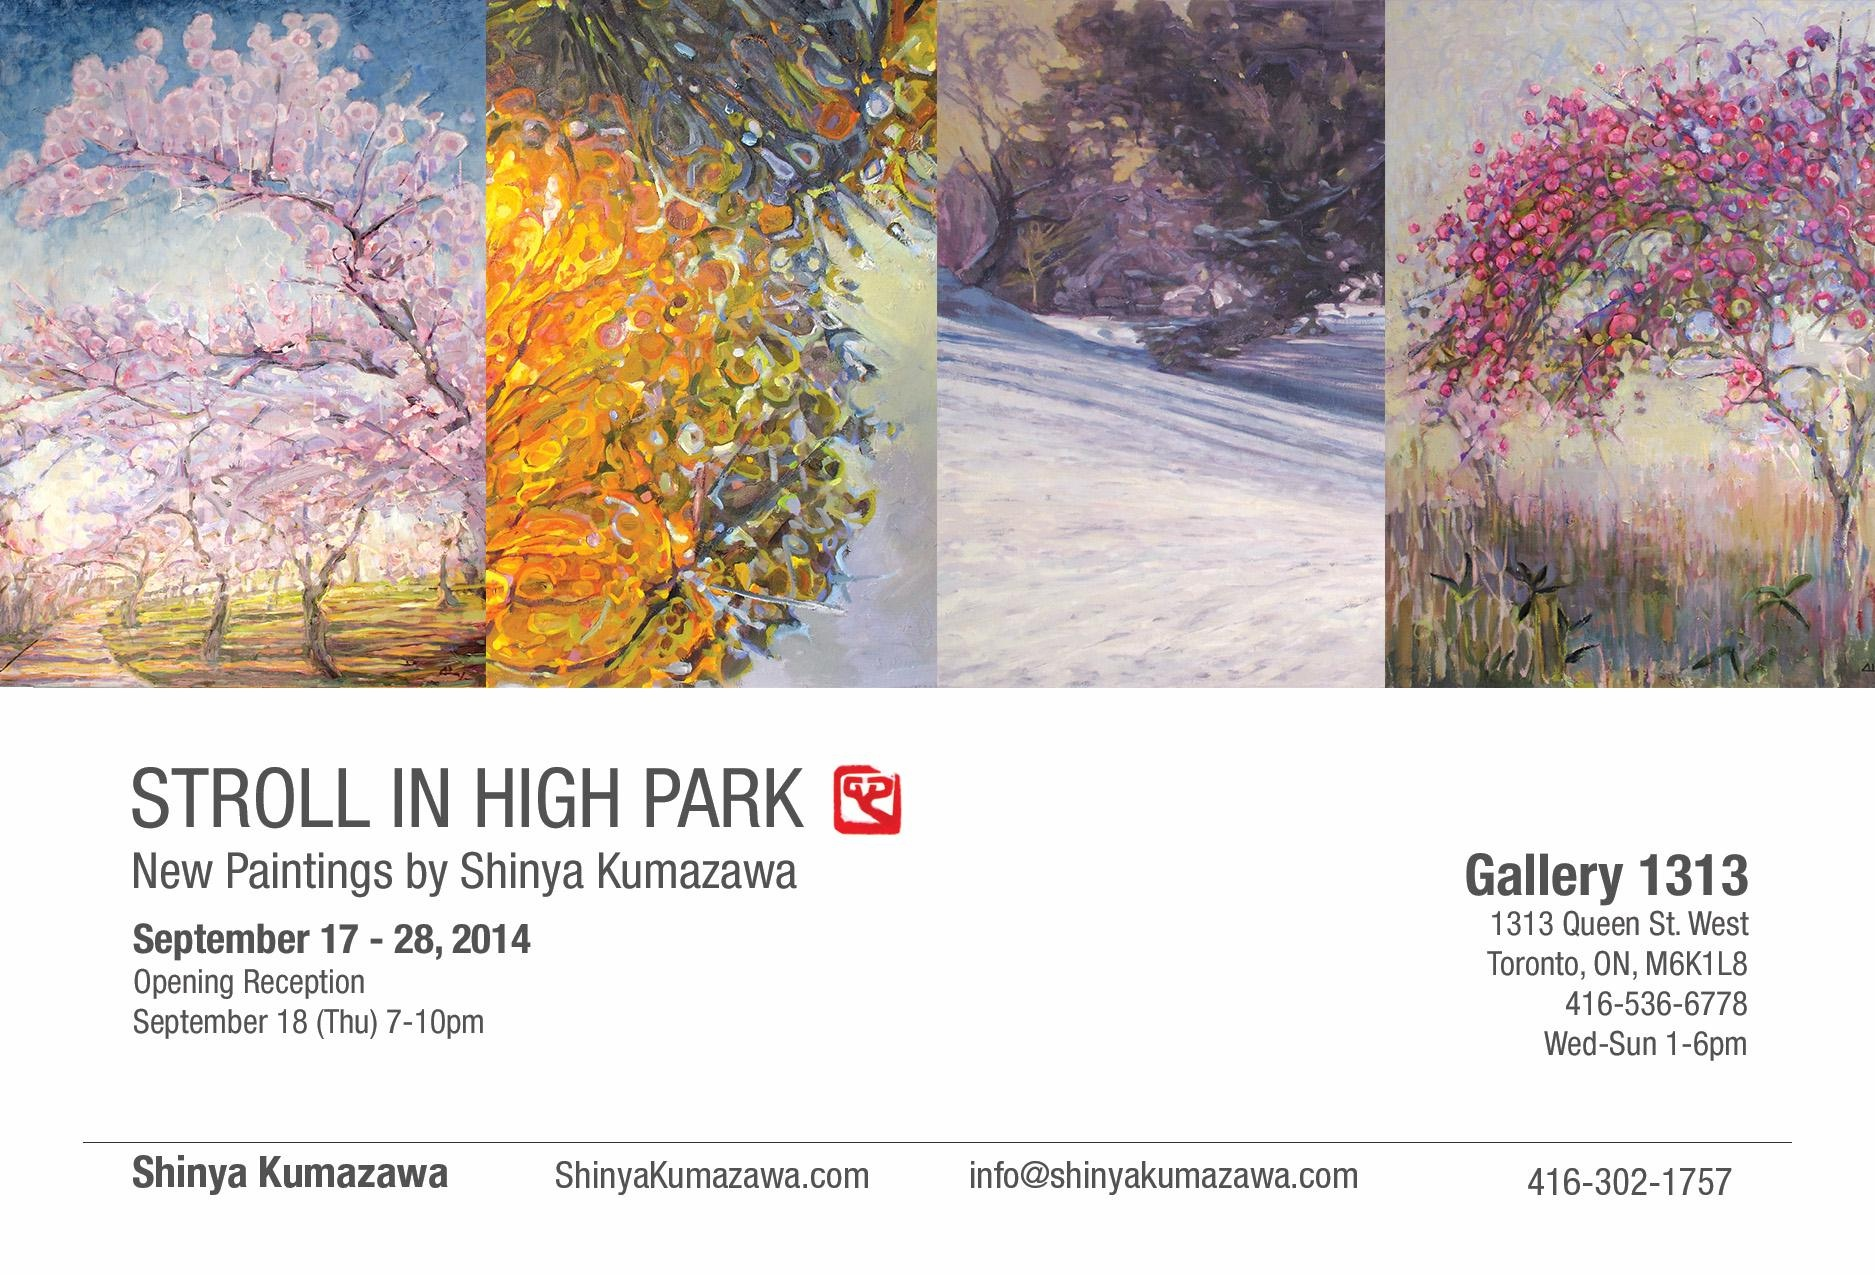 Stroll In High Park: New Paintings by Shinya Kumazawa  Sept. 17-28, 2014